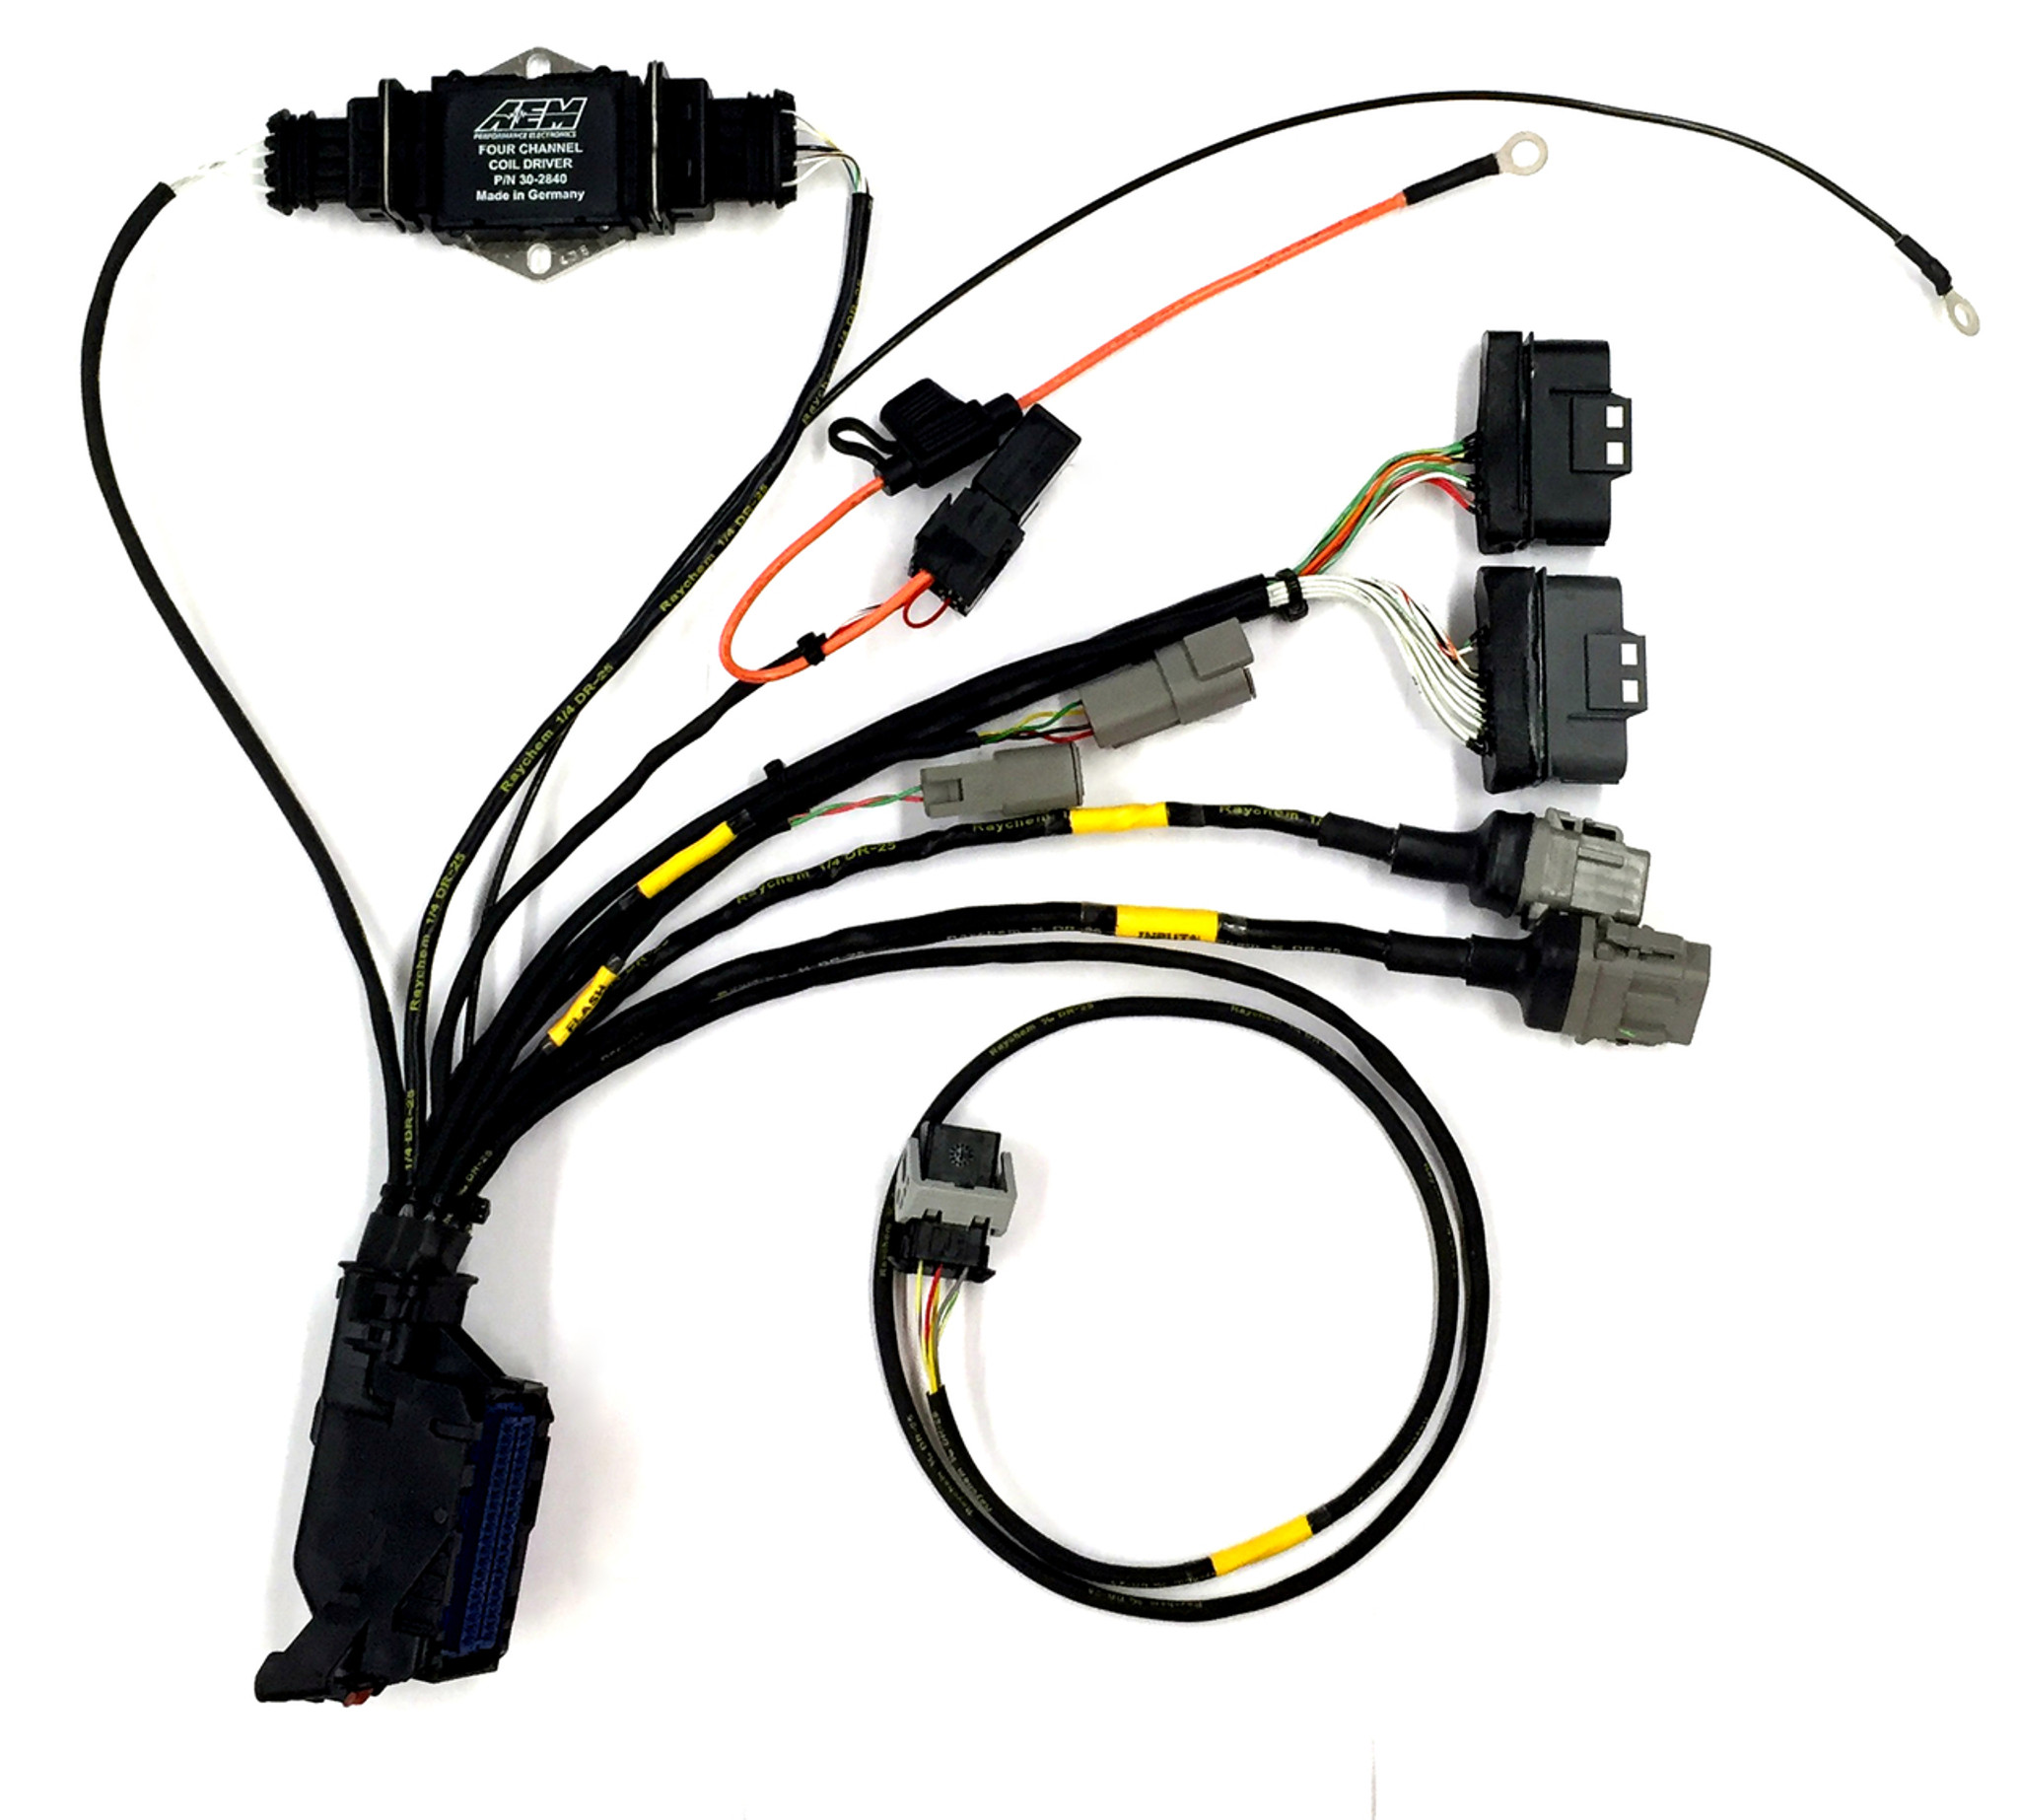 hight resolution of infinity ecu plug and play wiring harness shop htp p28 ecu wiring harness ecu wiring harness